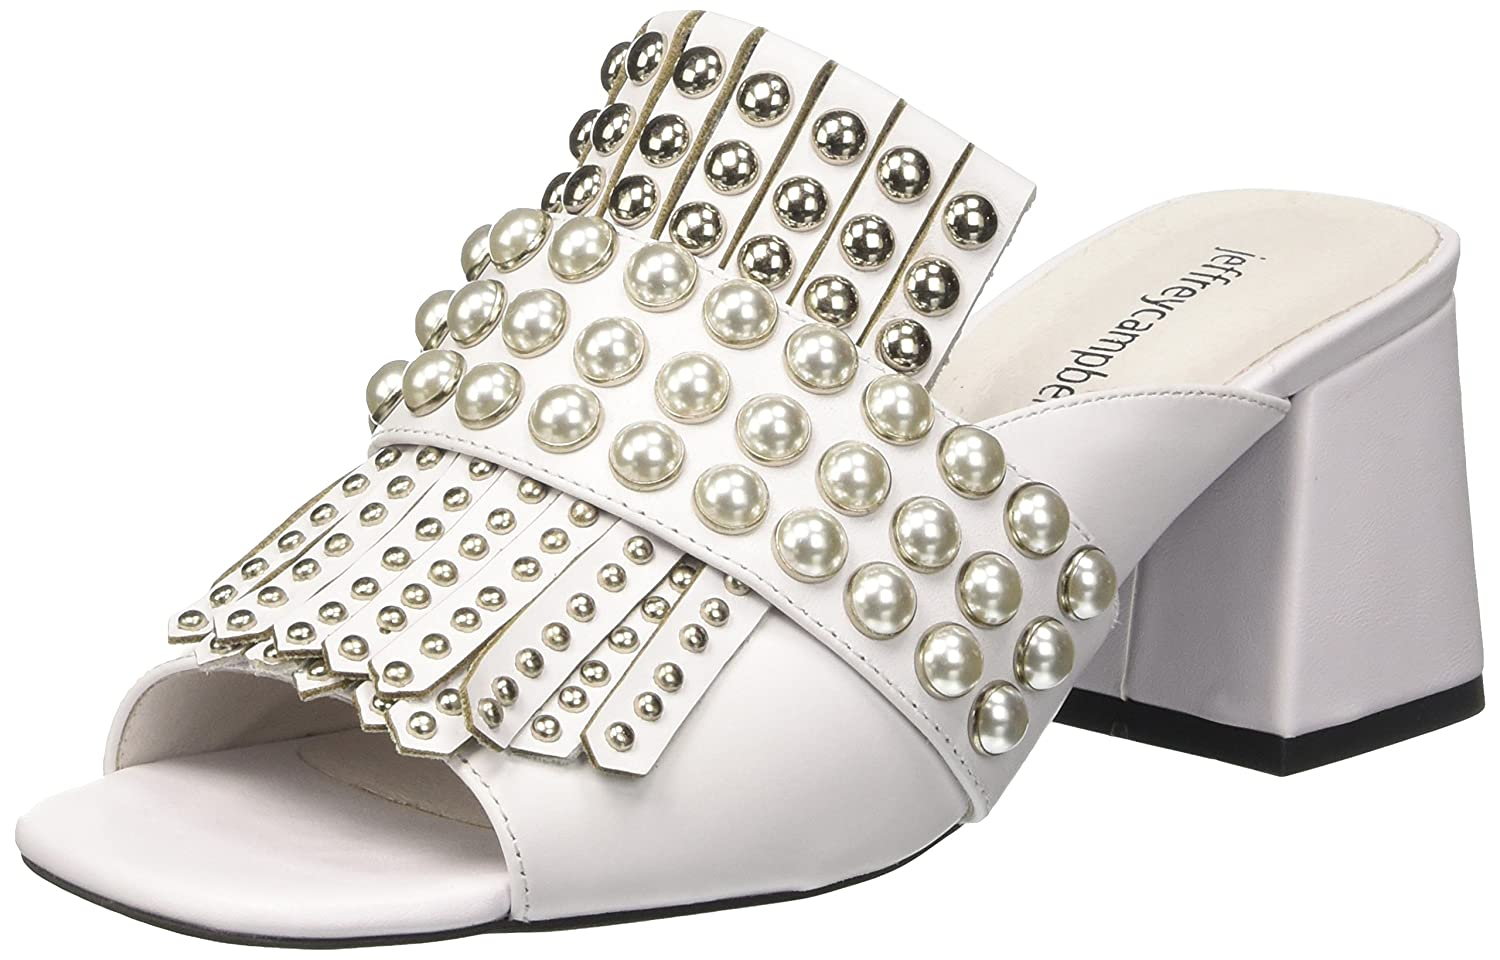 Jeffrey Campbell 8-Lenoir St, Scarpe col Tacco Punta Aperta Donna Bianco (Leather White Silver 001)